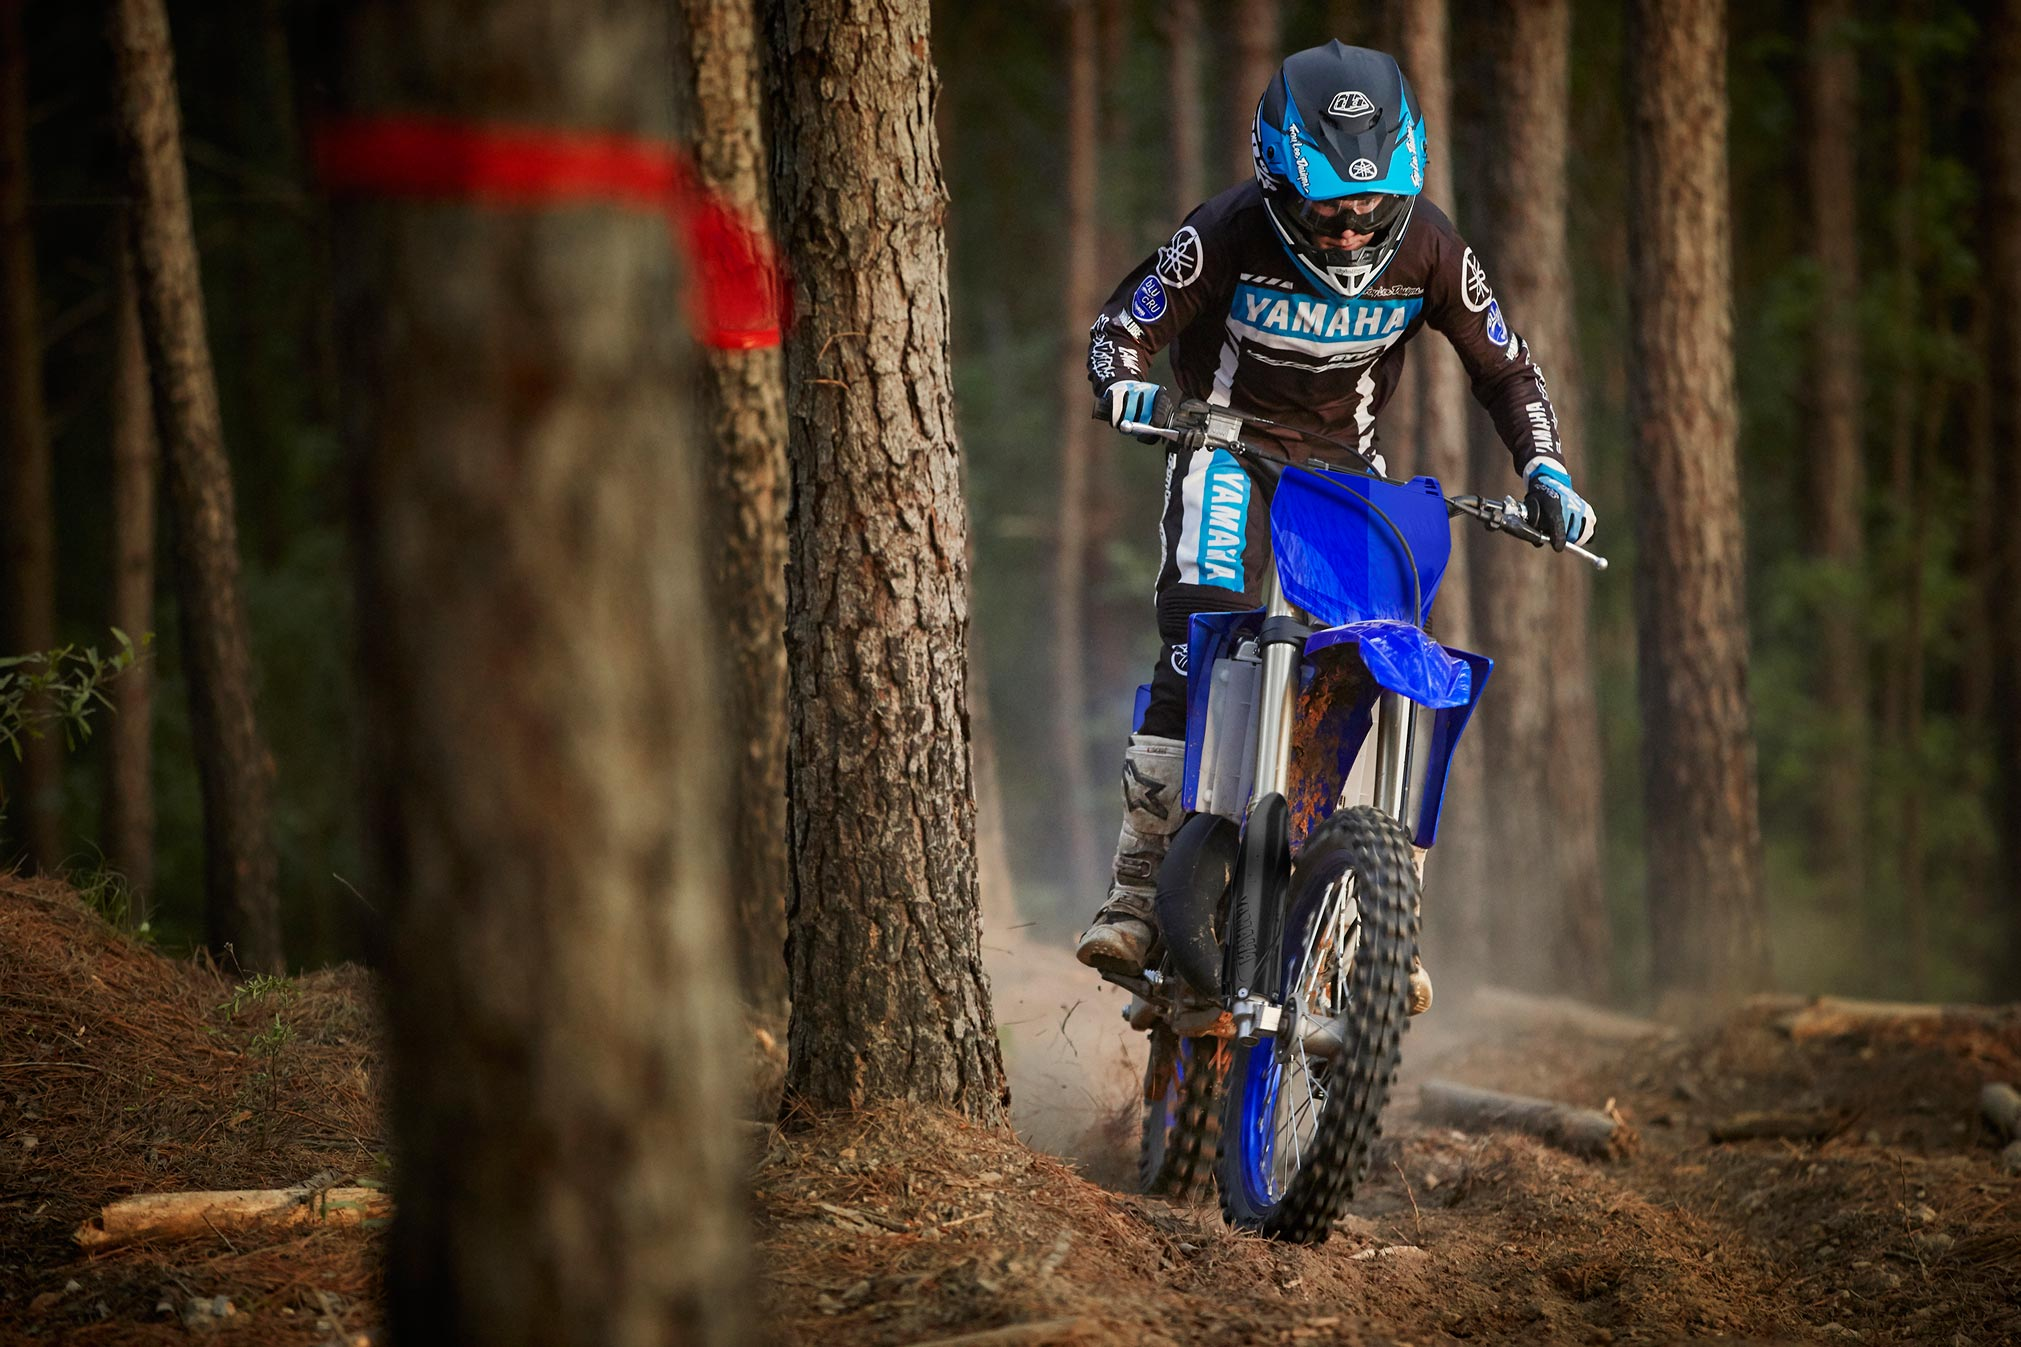 2021 Yamaha YZ125X Guide • Total Motorcycle